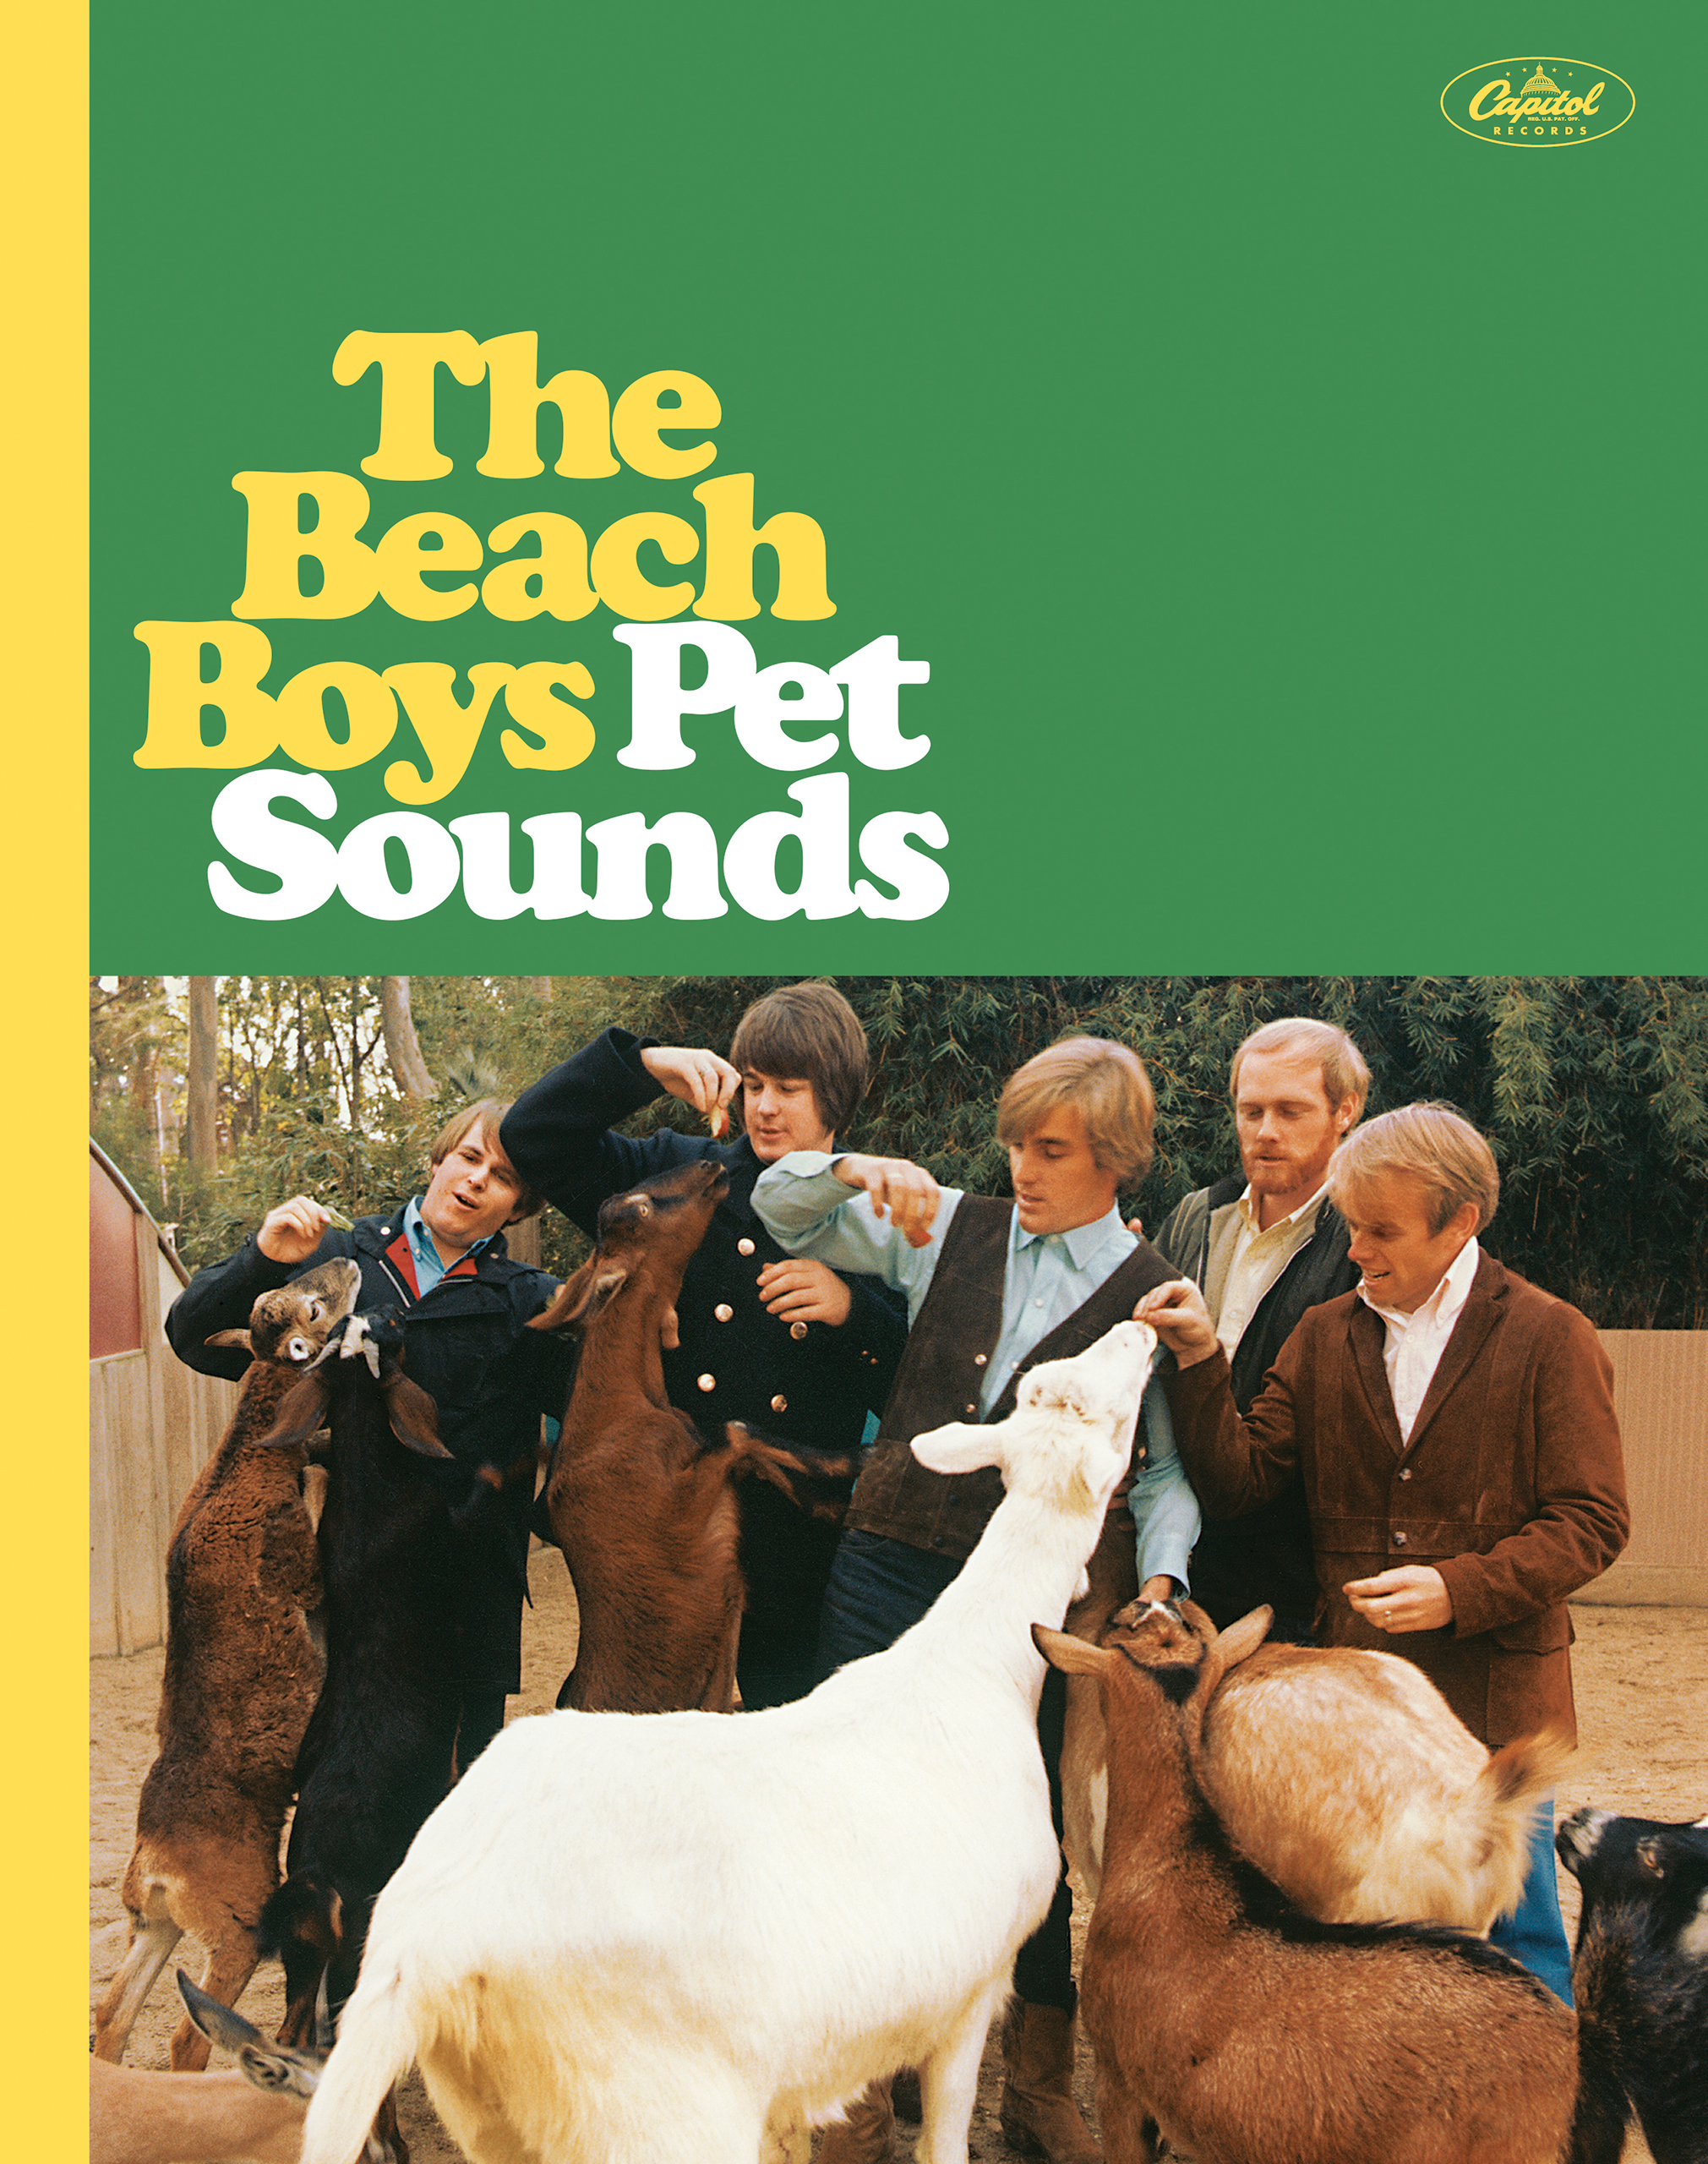 50th Anniversary Collectors Edition cover of Pet Sounds.